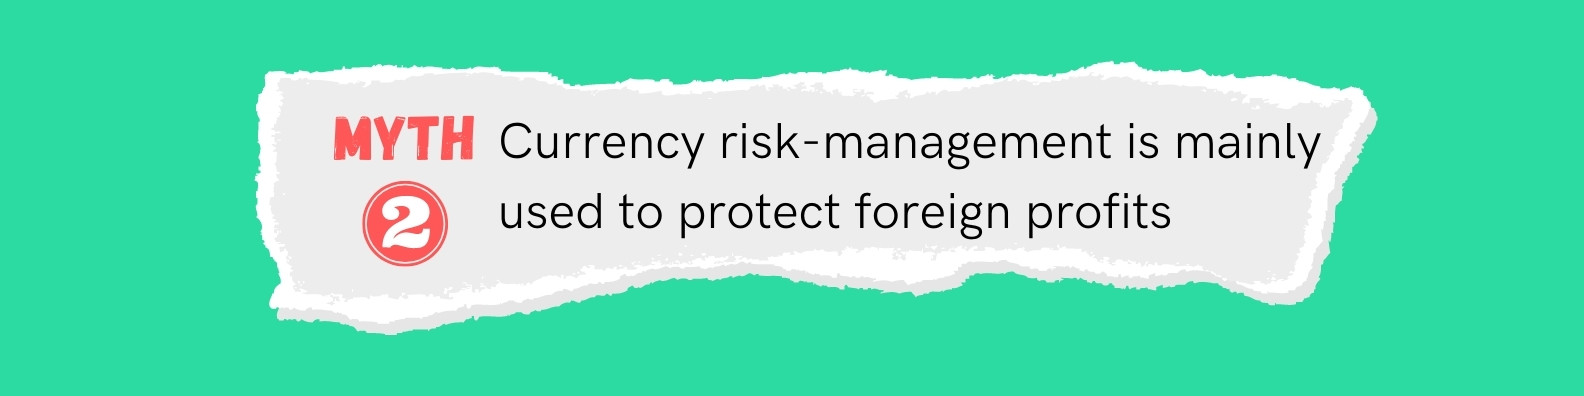 Myth: Currency risk-management mainly used to protect foreign profits.